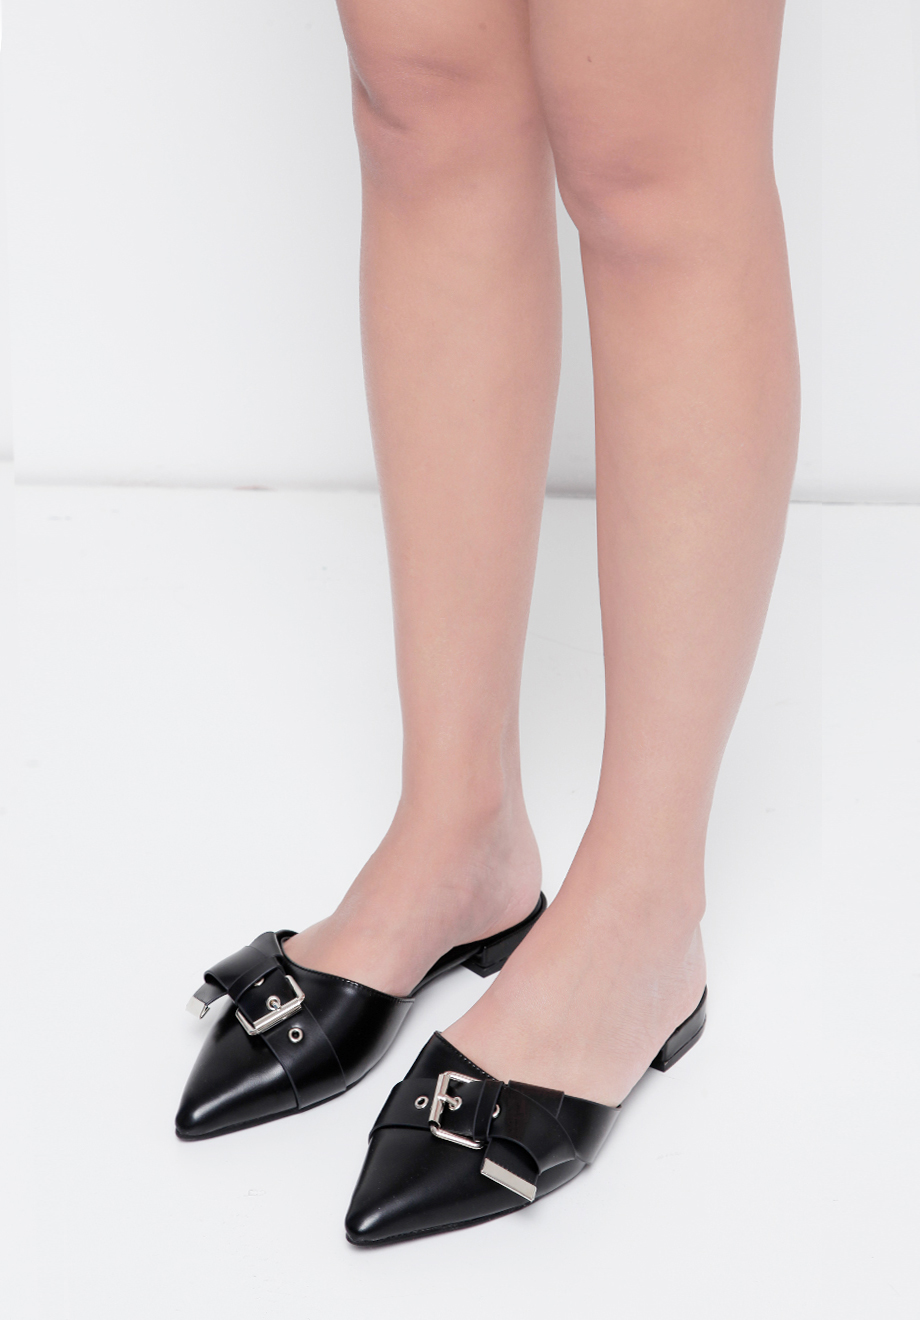 Chocochips Boutique Zelma Dress White Aby Shoes Black